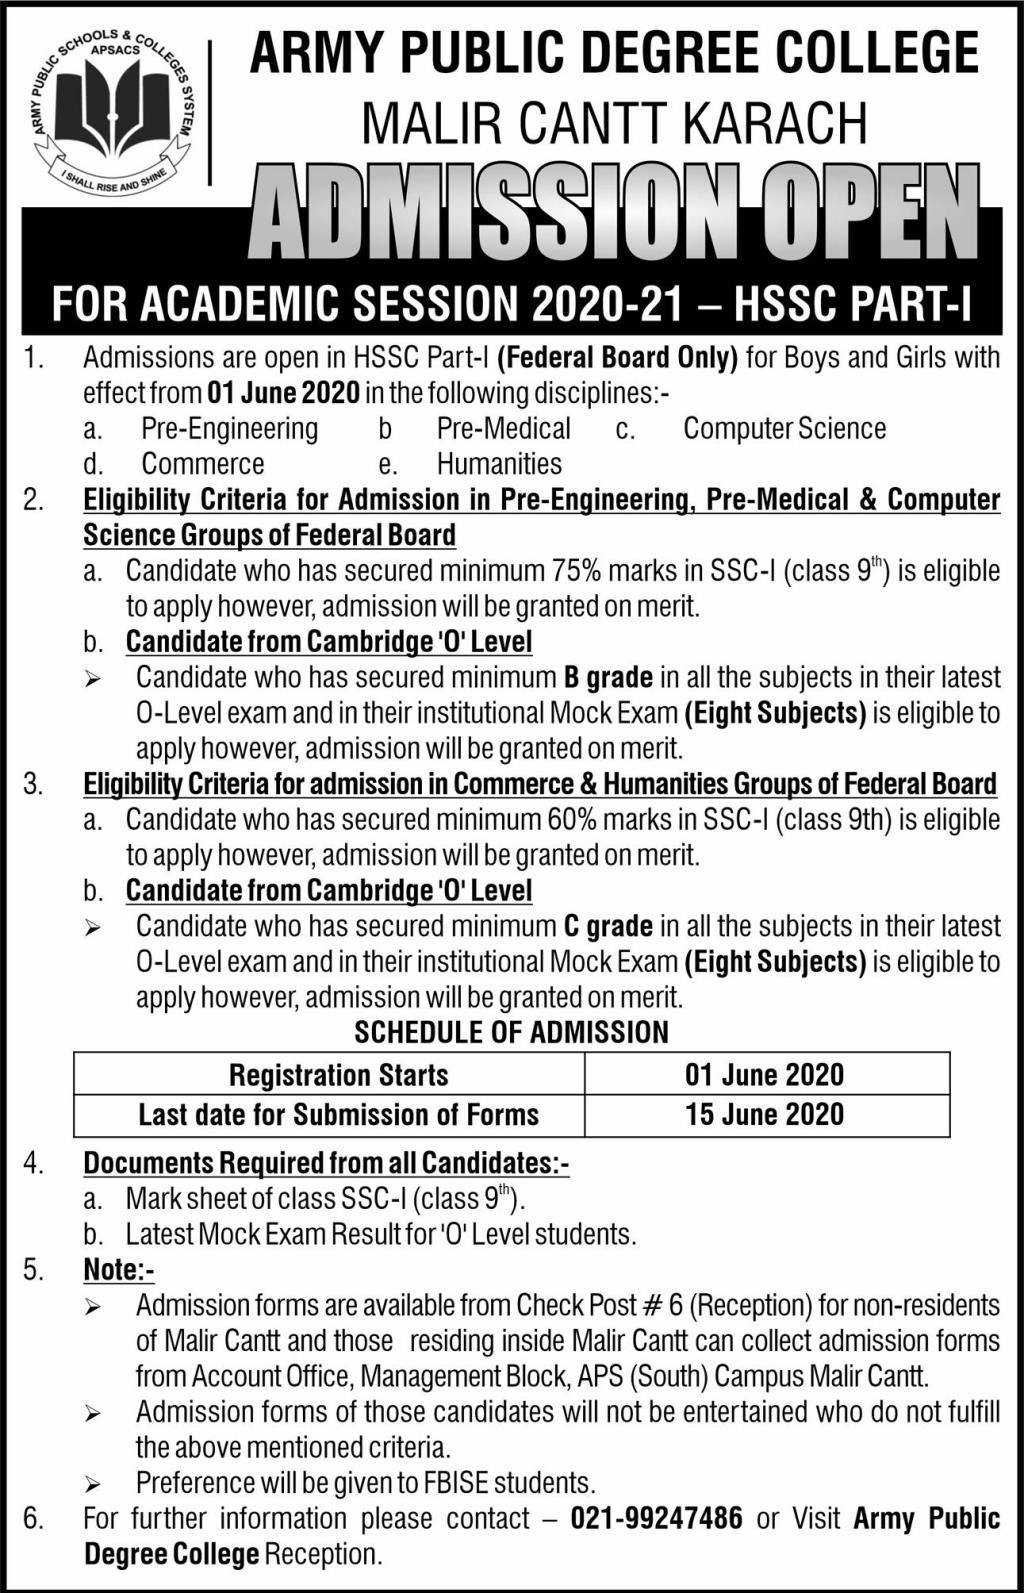 Army Public Degree College Malir Cantt Admission 2020-21